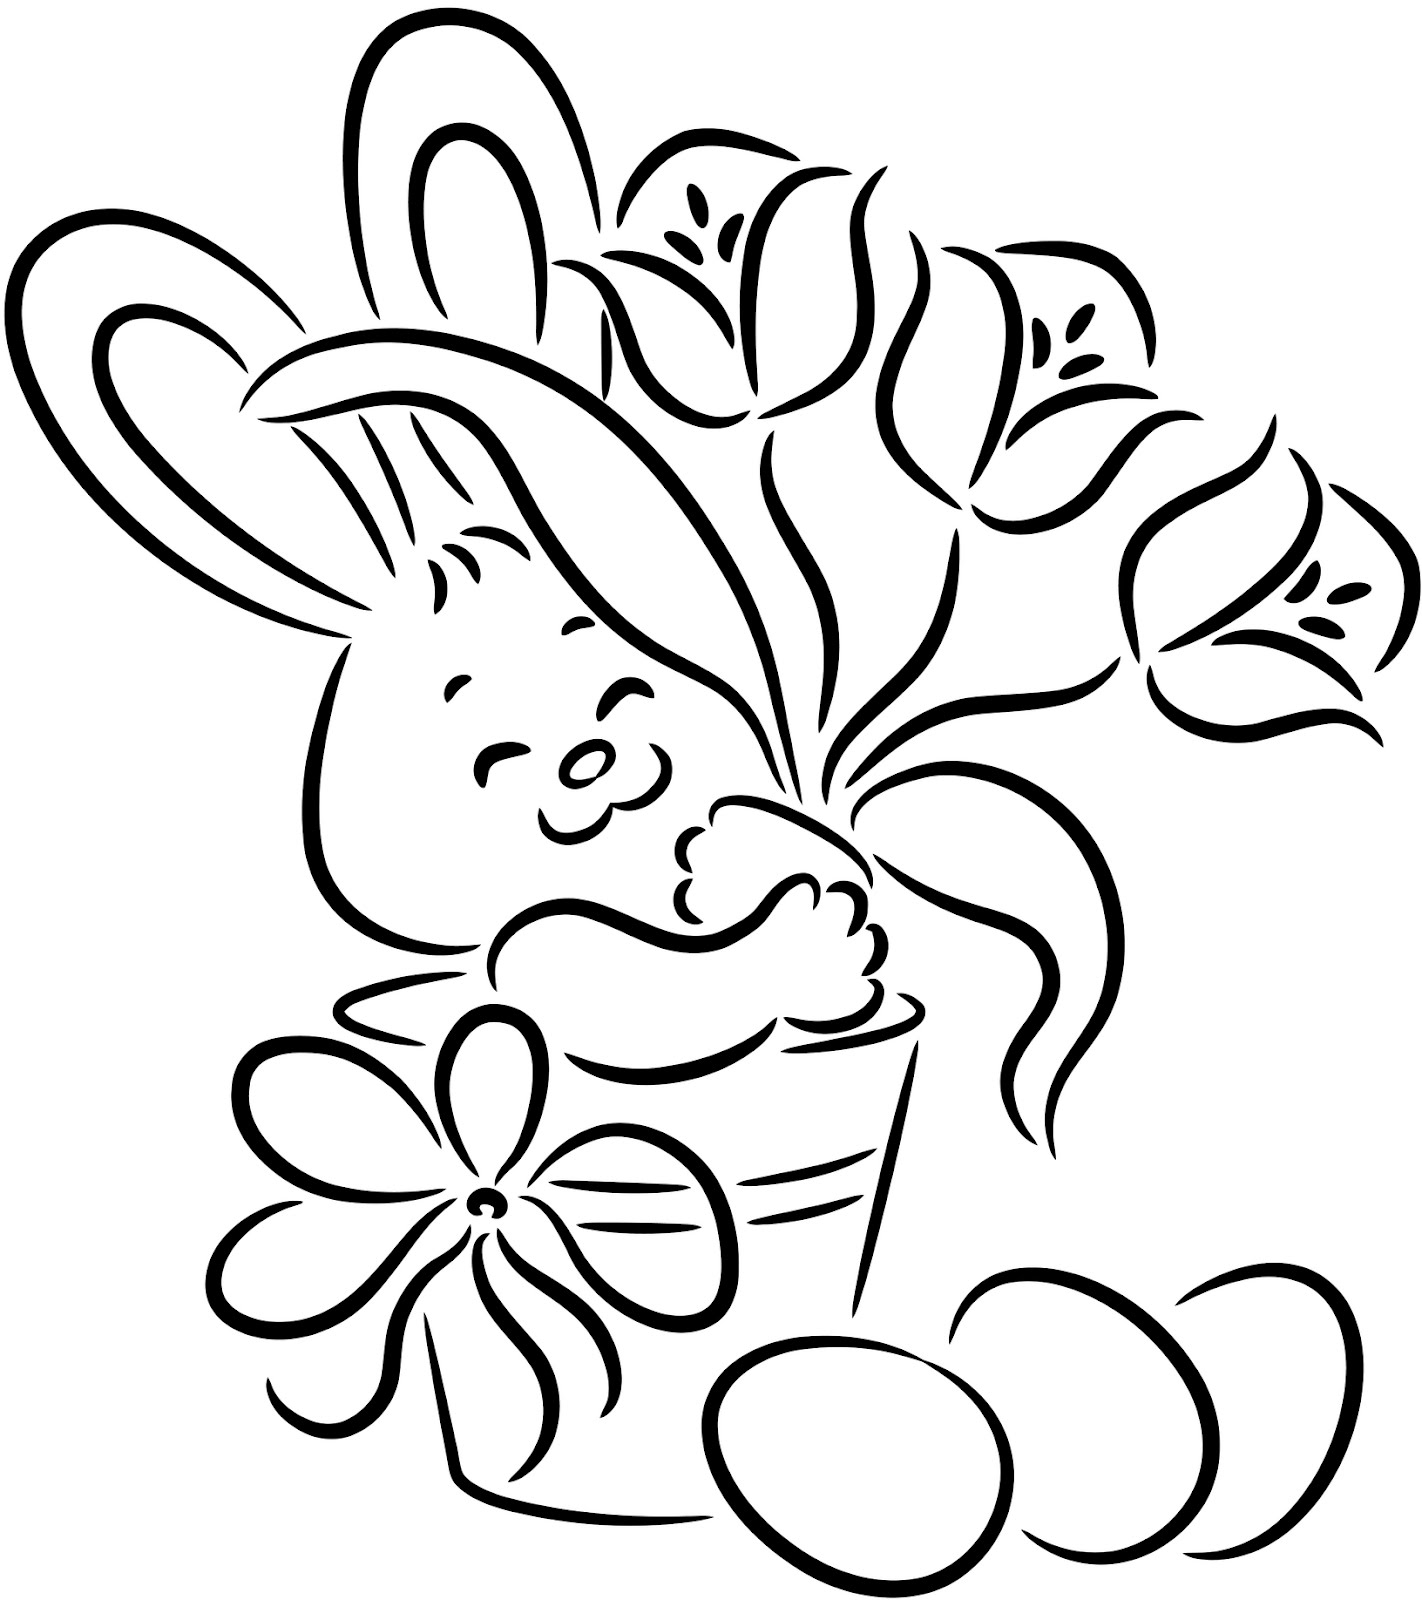 16 Easter Bunny Coloring Pages >> Disney Coloring Pages